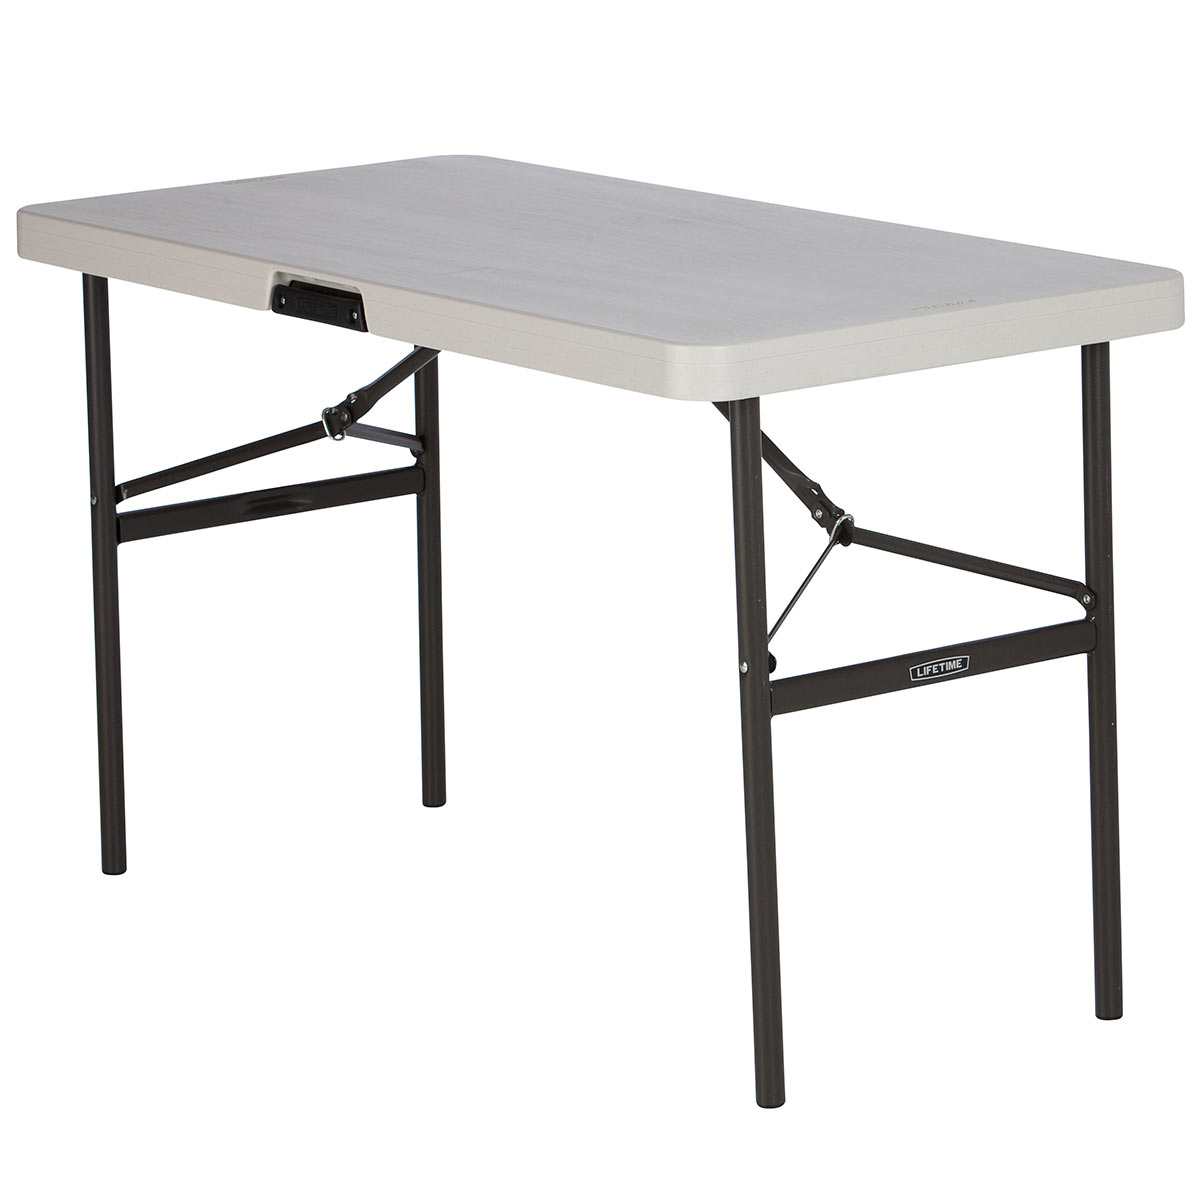 Foldable Table Costco | Costco Card Table | Costco Folding Tables